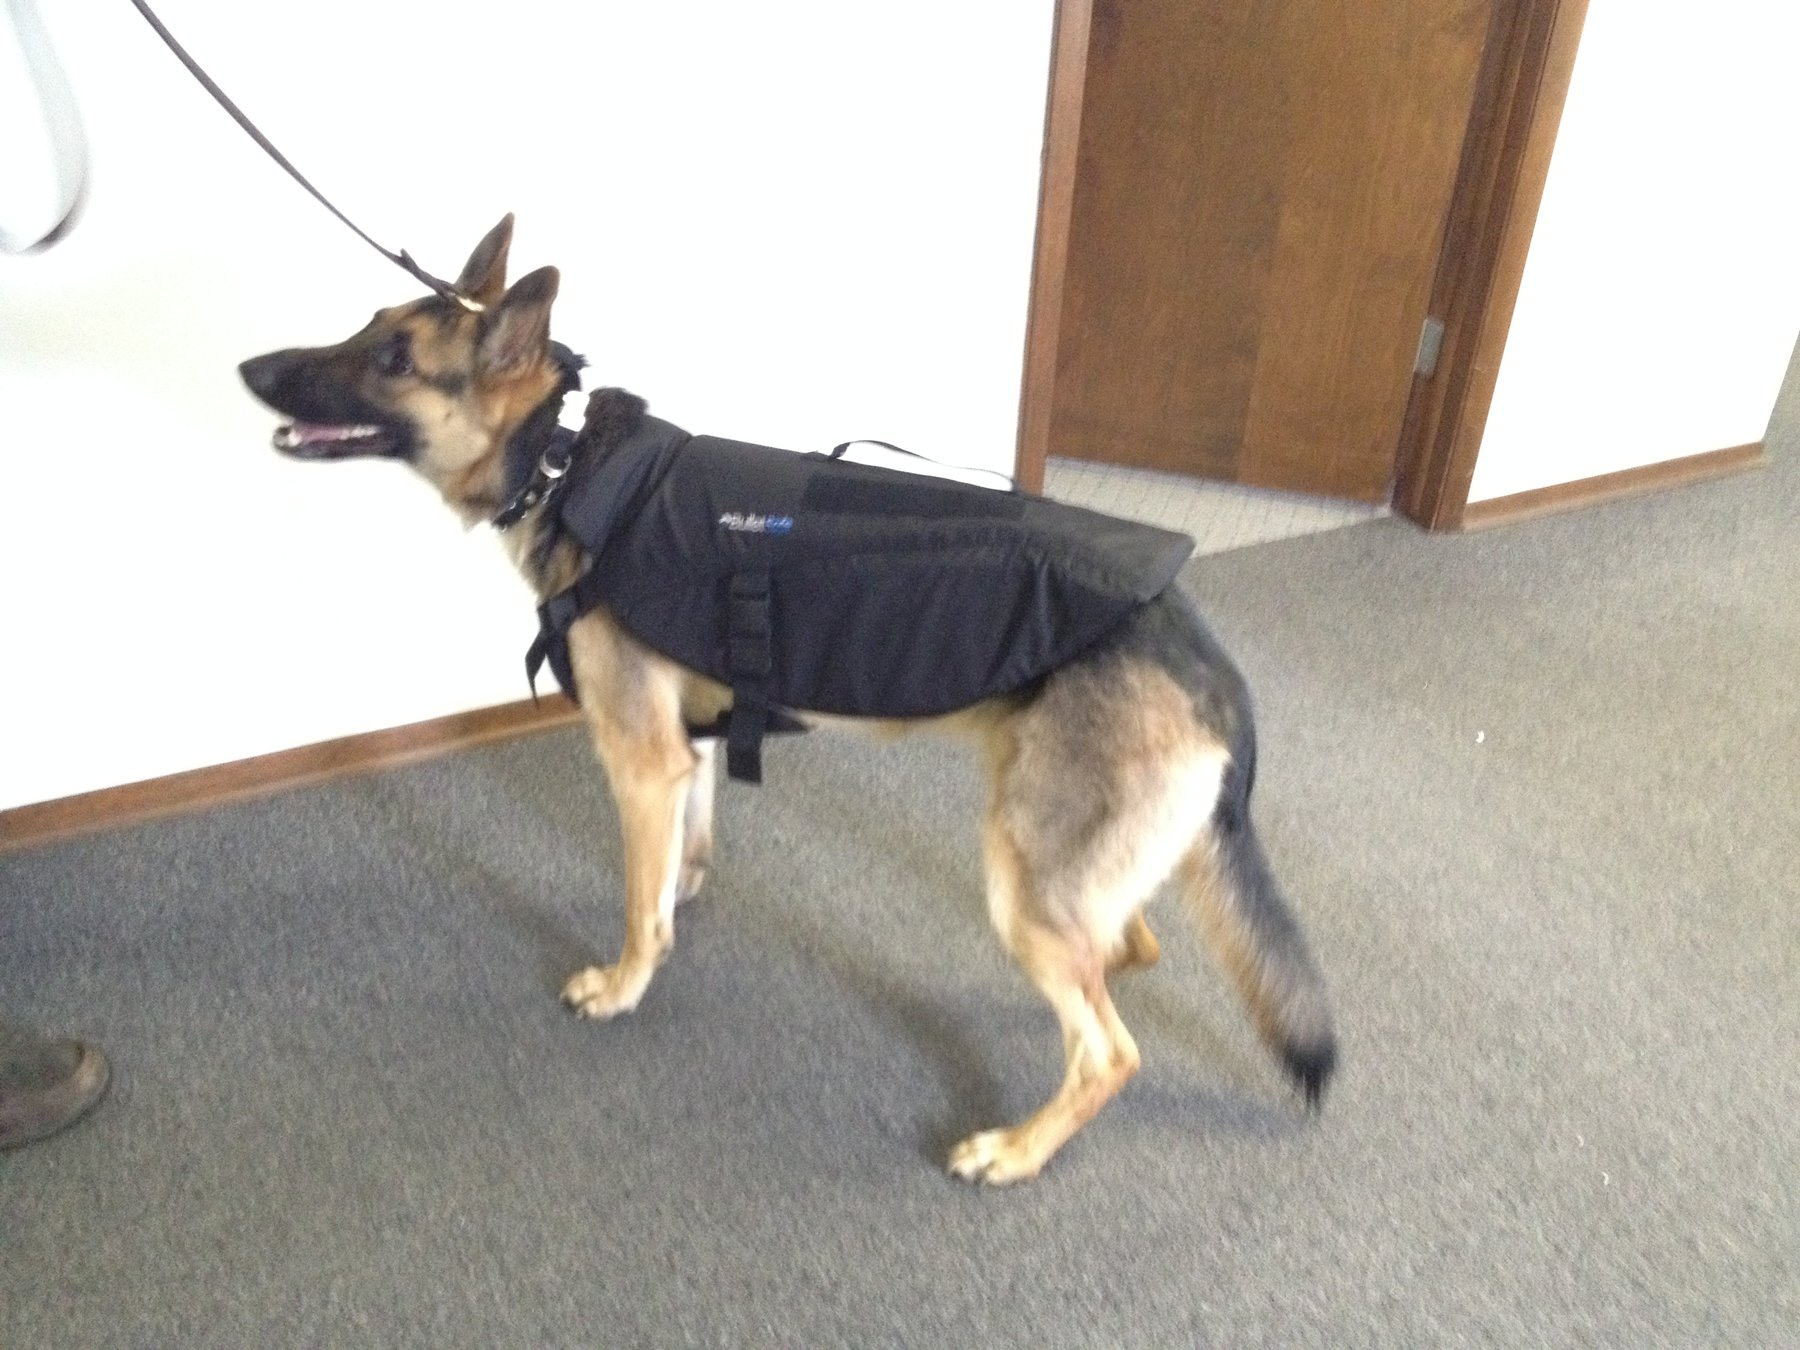 A dog wearing a bulletproof vest beside an open door